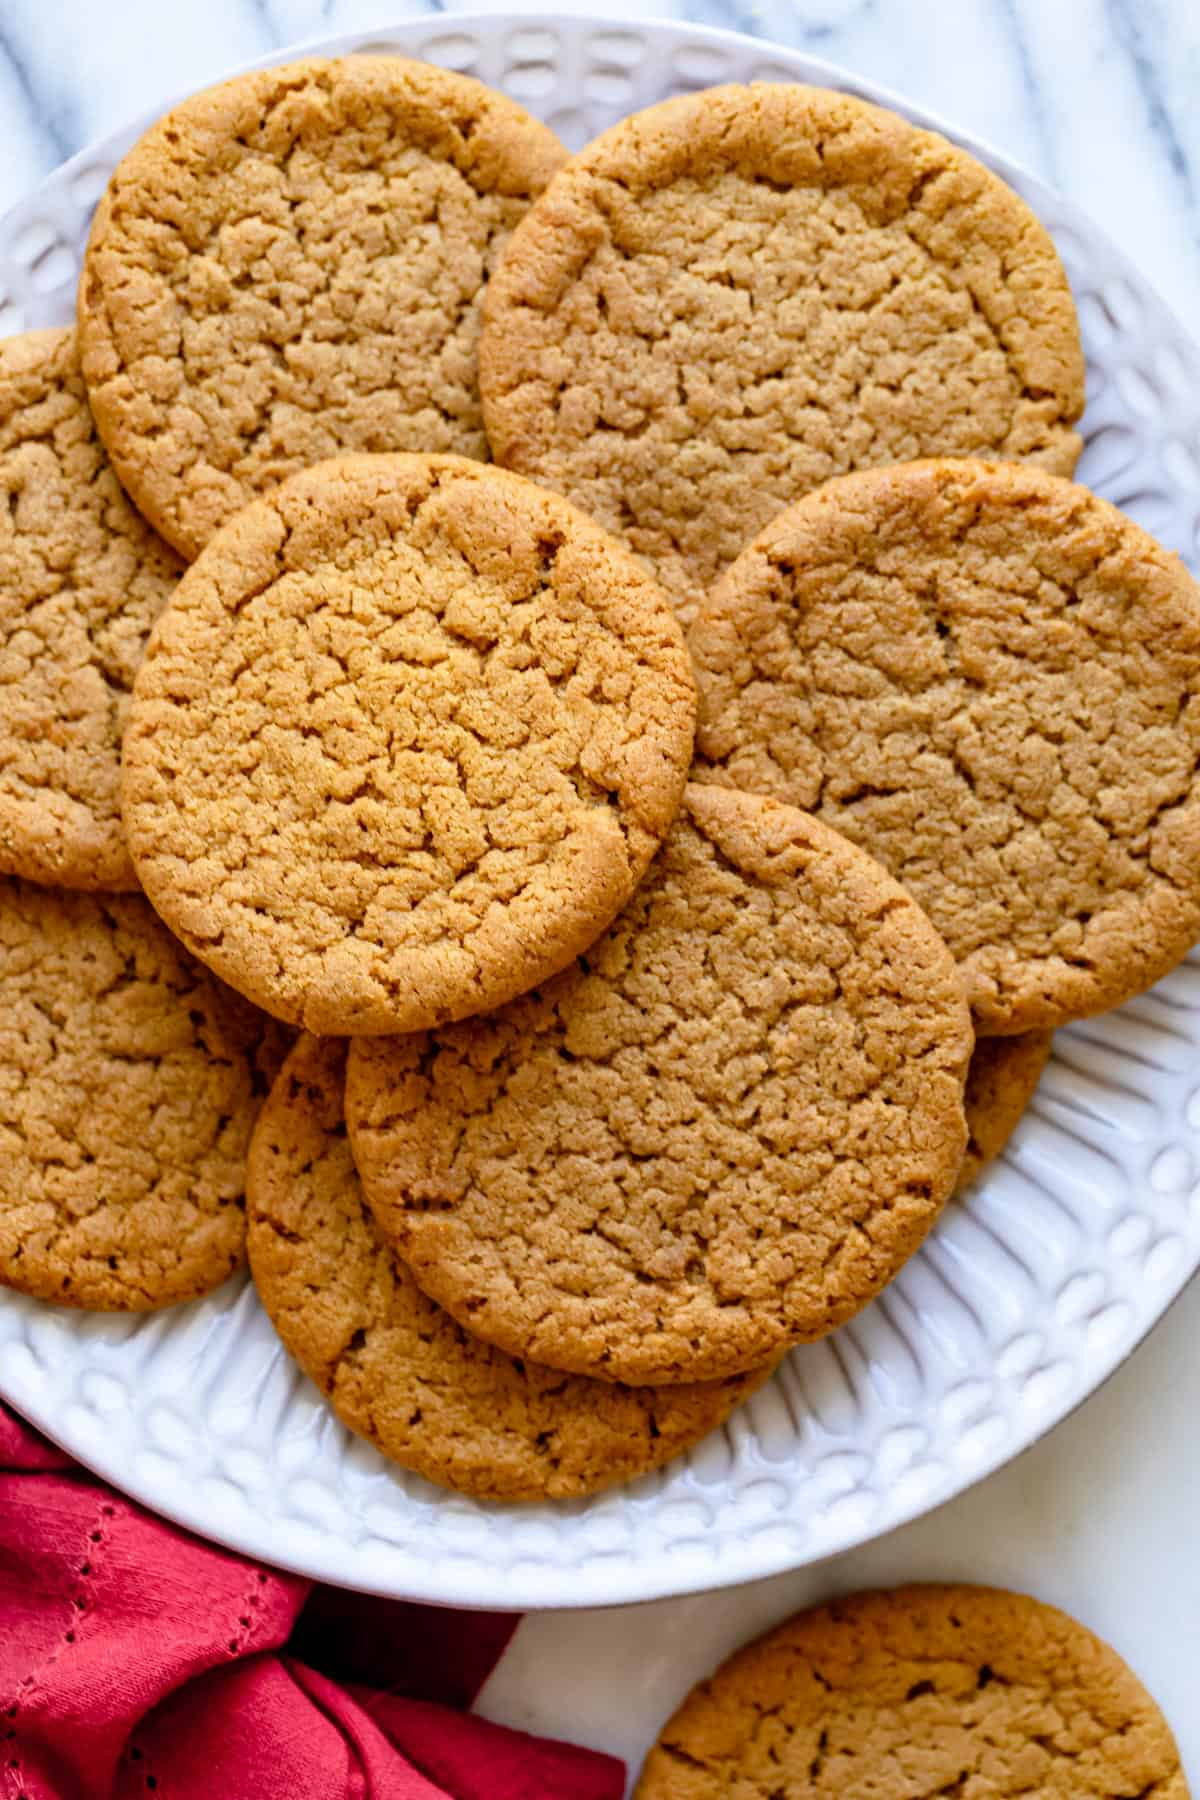 Large plate of ginger snap cookies after on marble background